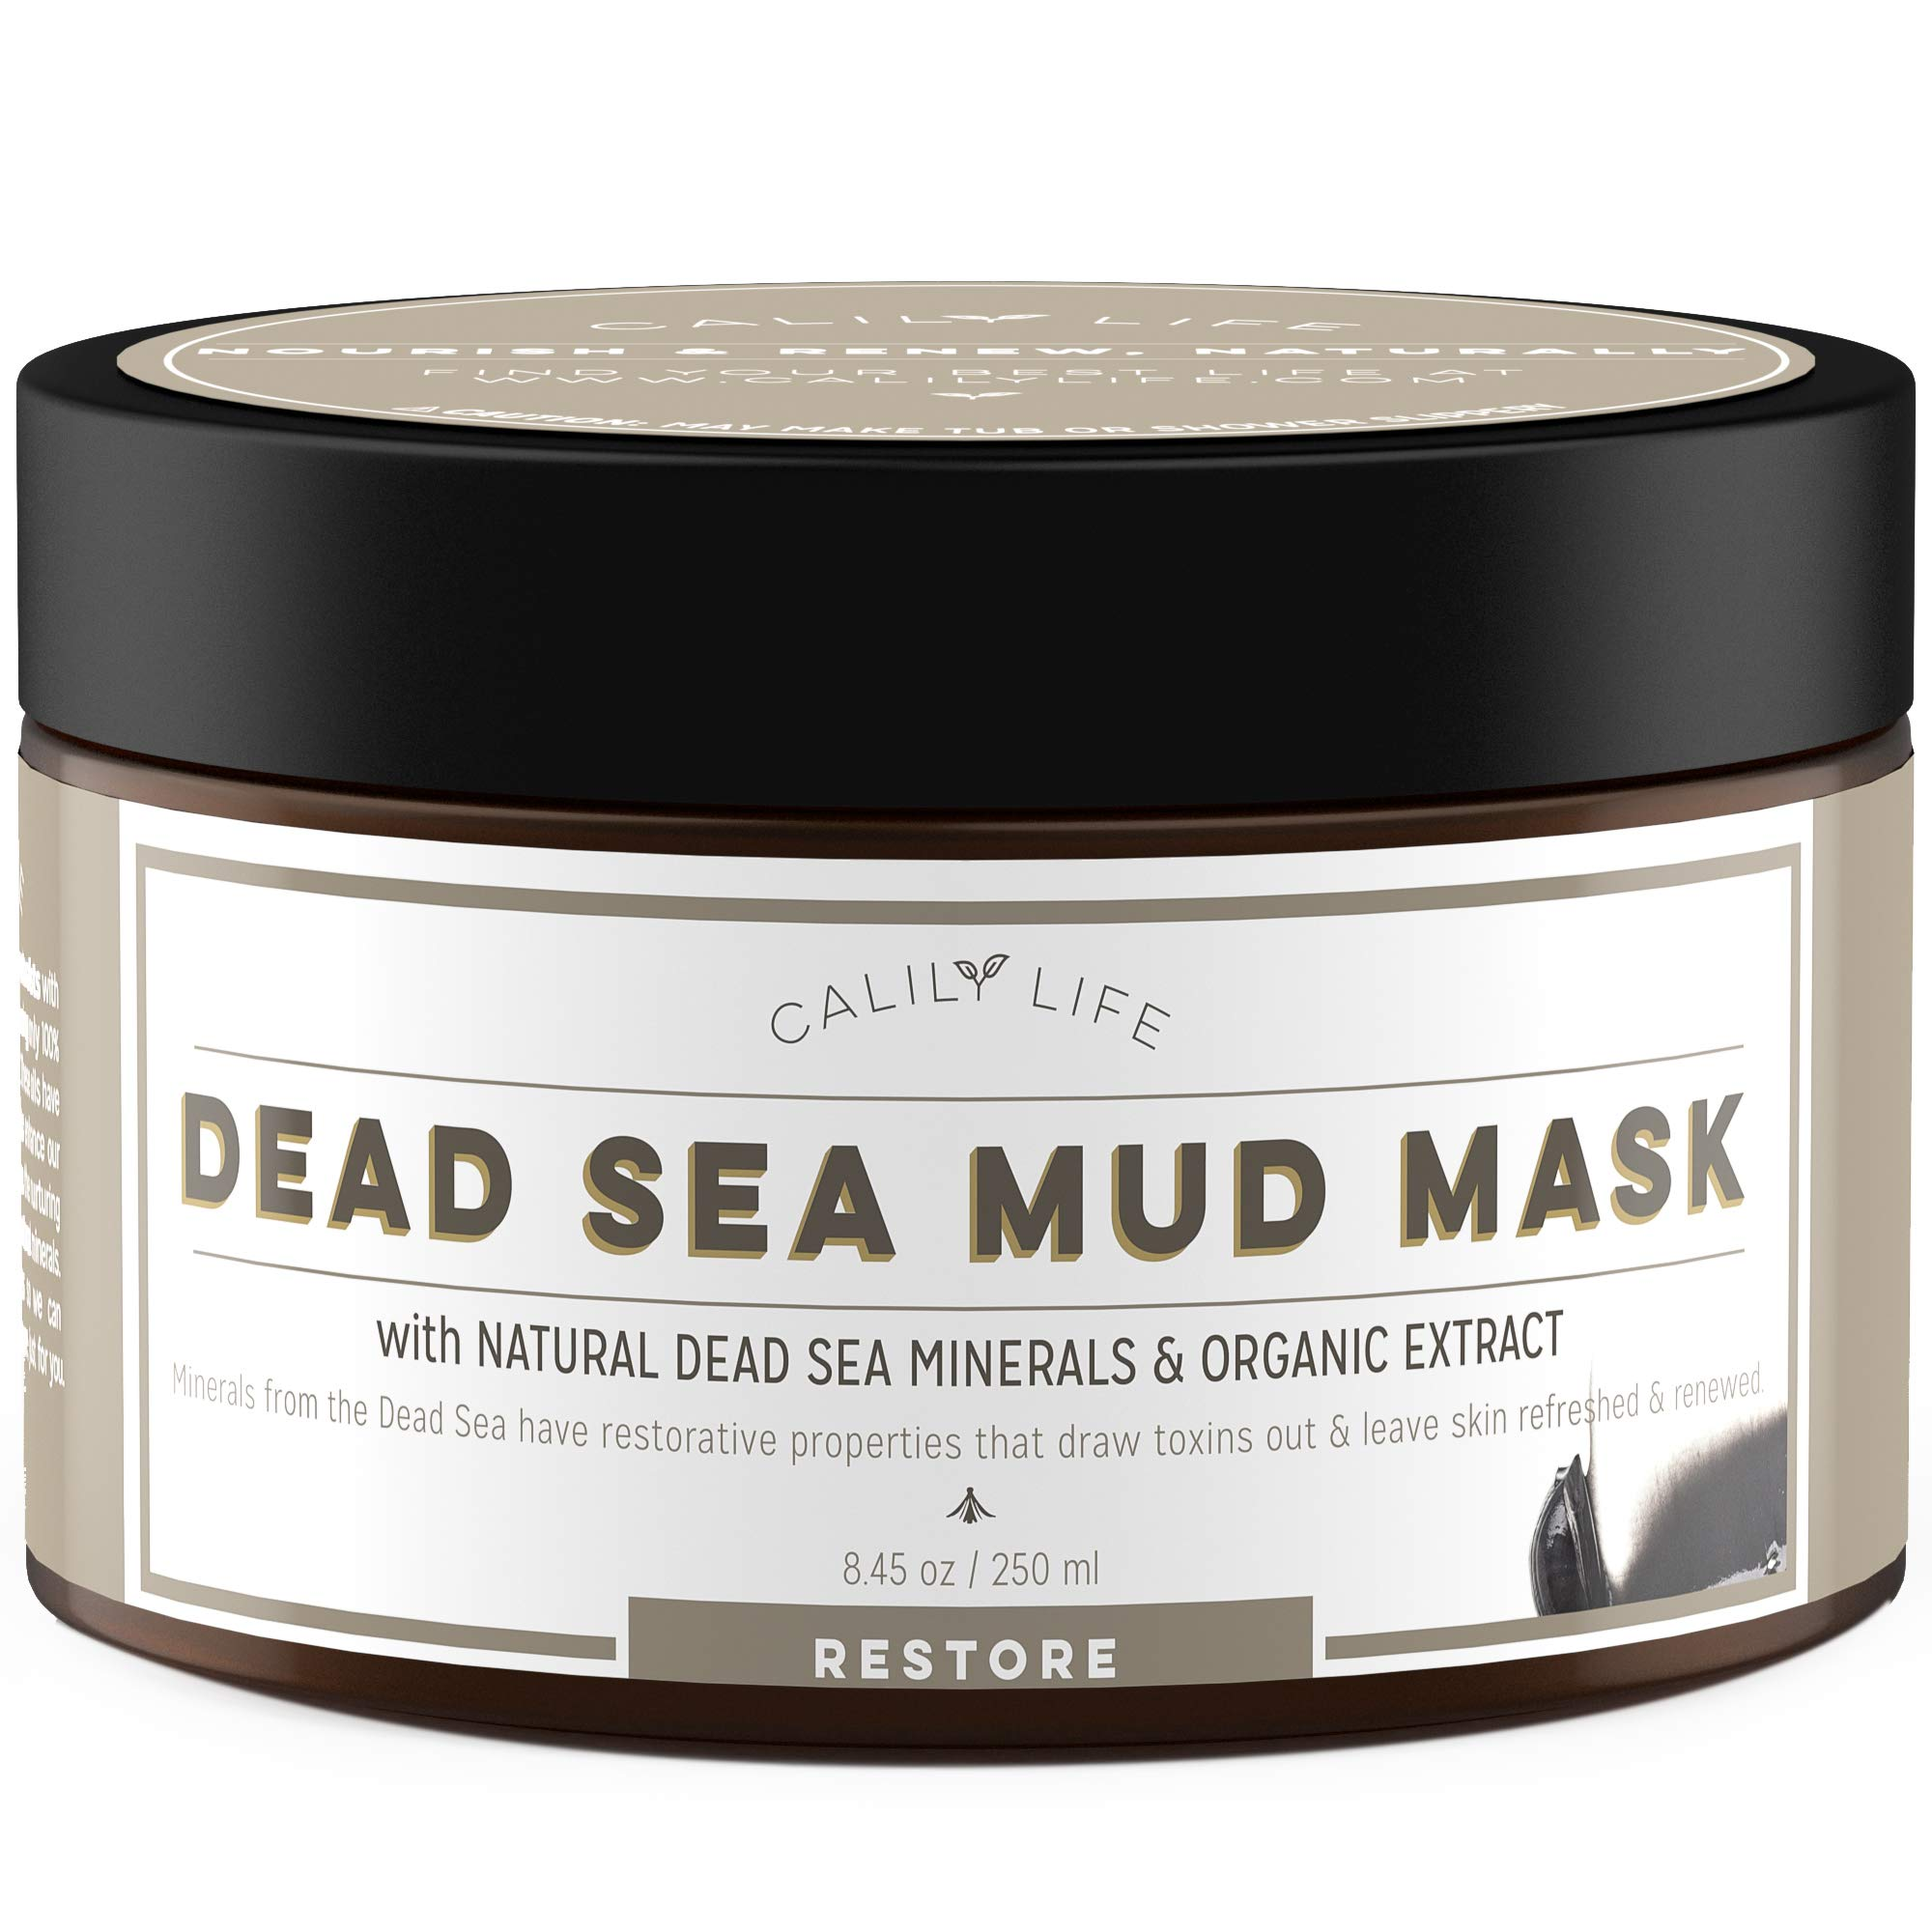 CalilyLife Organic Dead Sea Mud Mask, 8.5 Oz. - Organic Deep Skin Cleanser – Face and Body Treatment – Eliminates Acne, Wrinkles, Cellulite - Cleanses Pores, Revitalizes Skin with a Youthful Glow